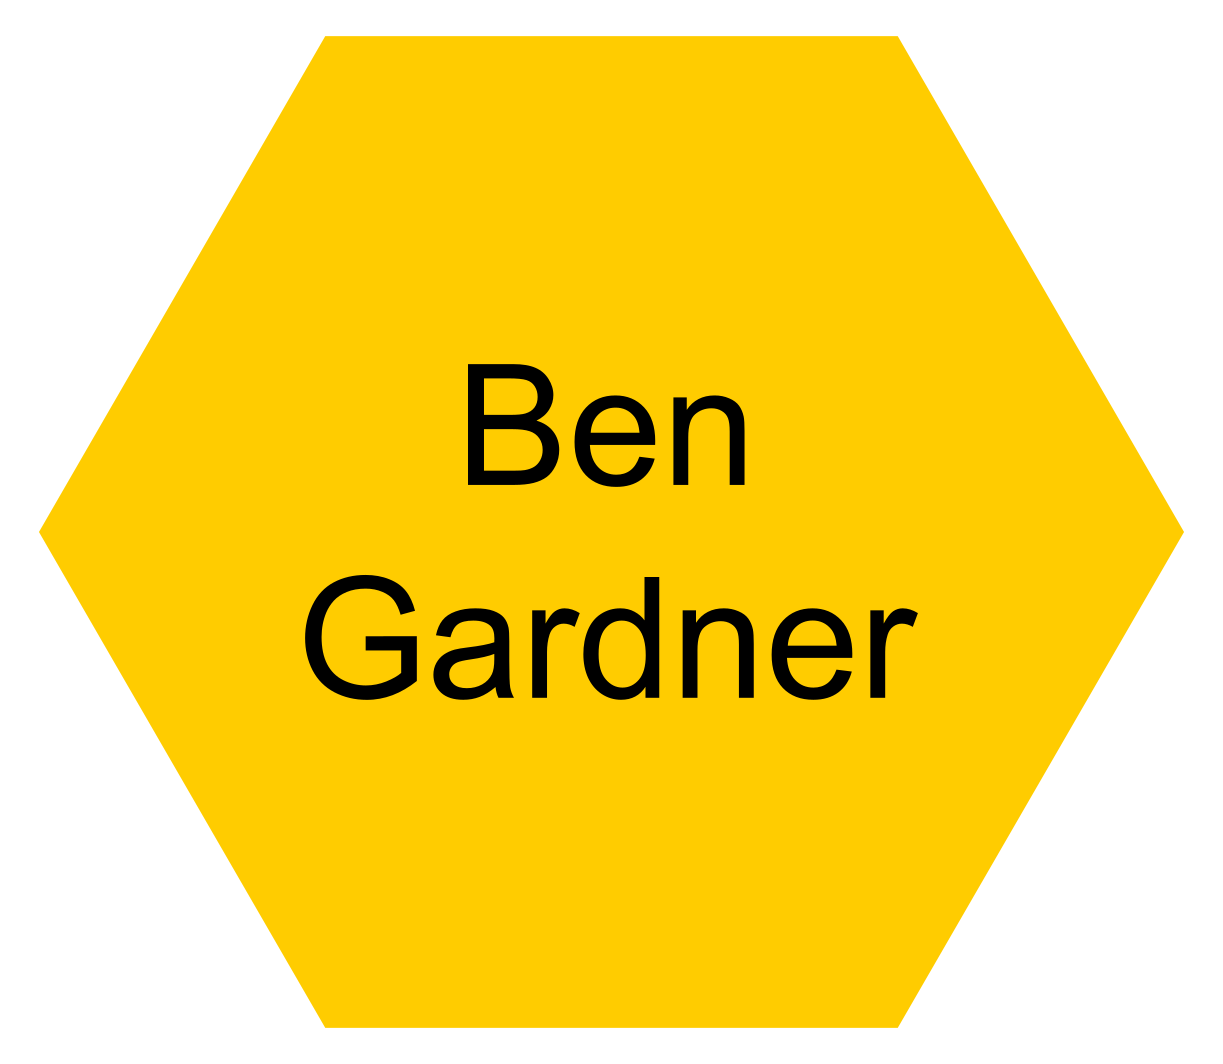 Dr. Benjamin Gardner (University of Exeter: Post-Doctoral Researcher) - Click this icon to reveal their contact details.